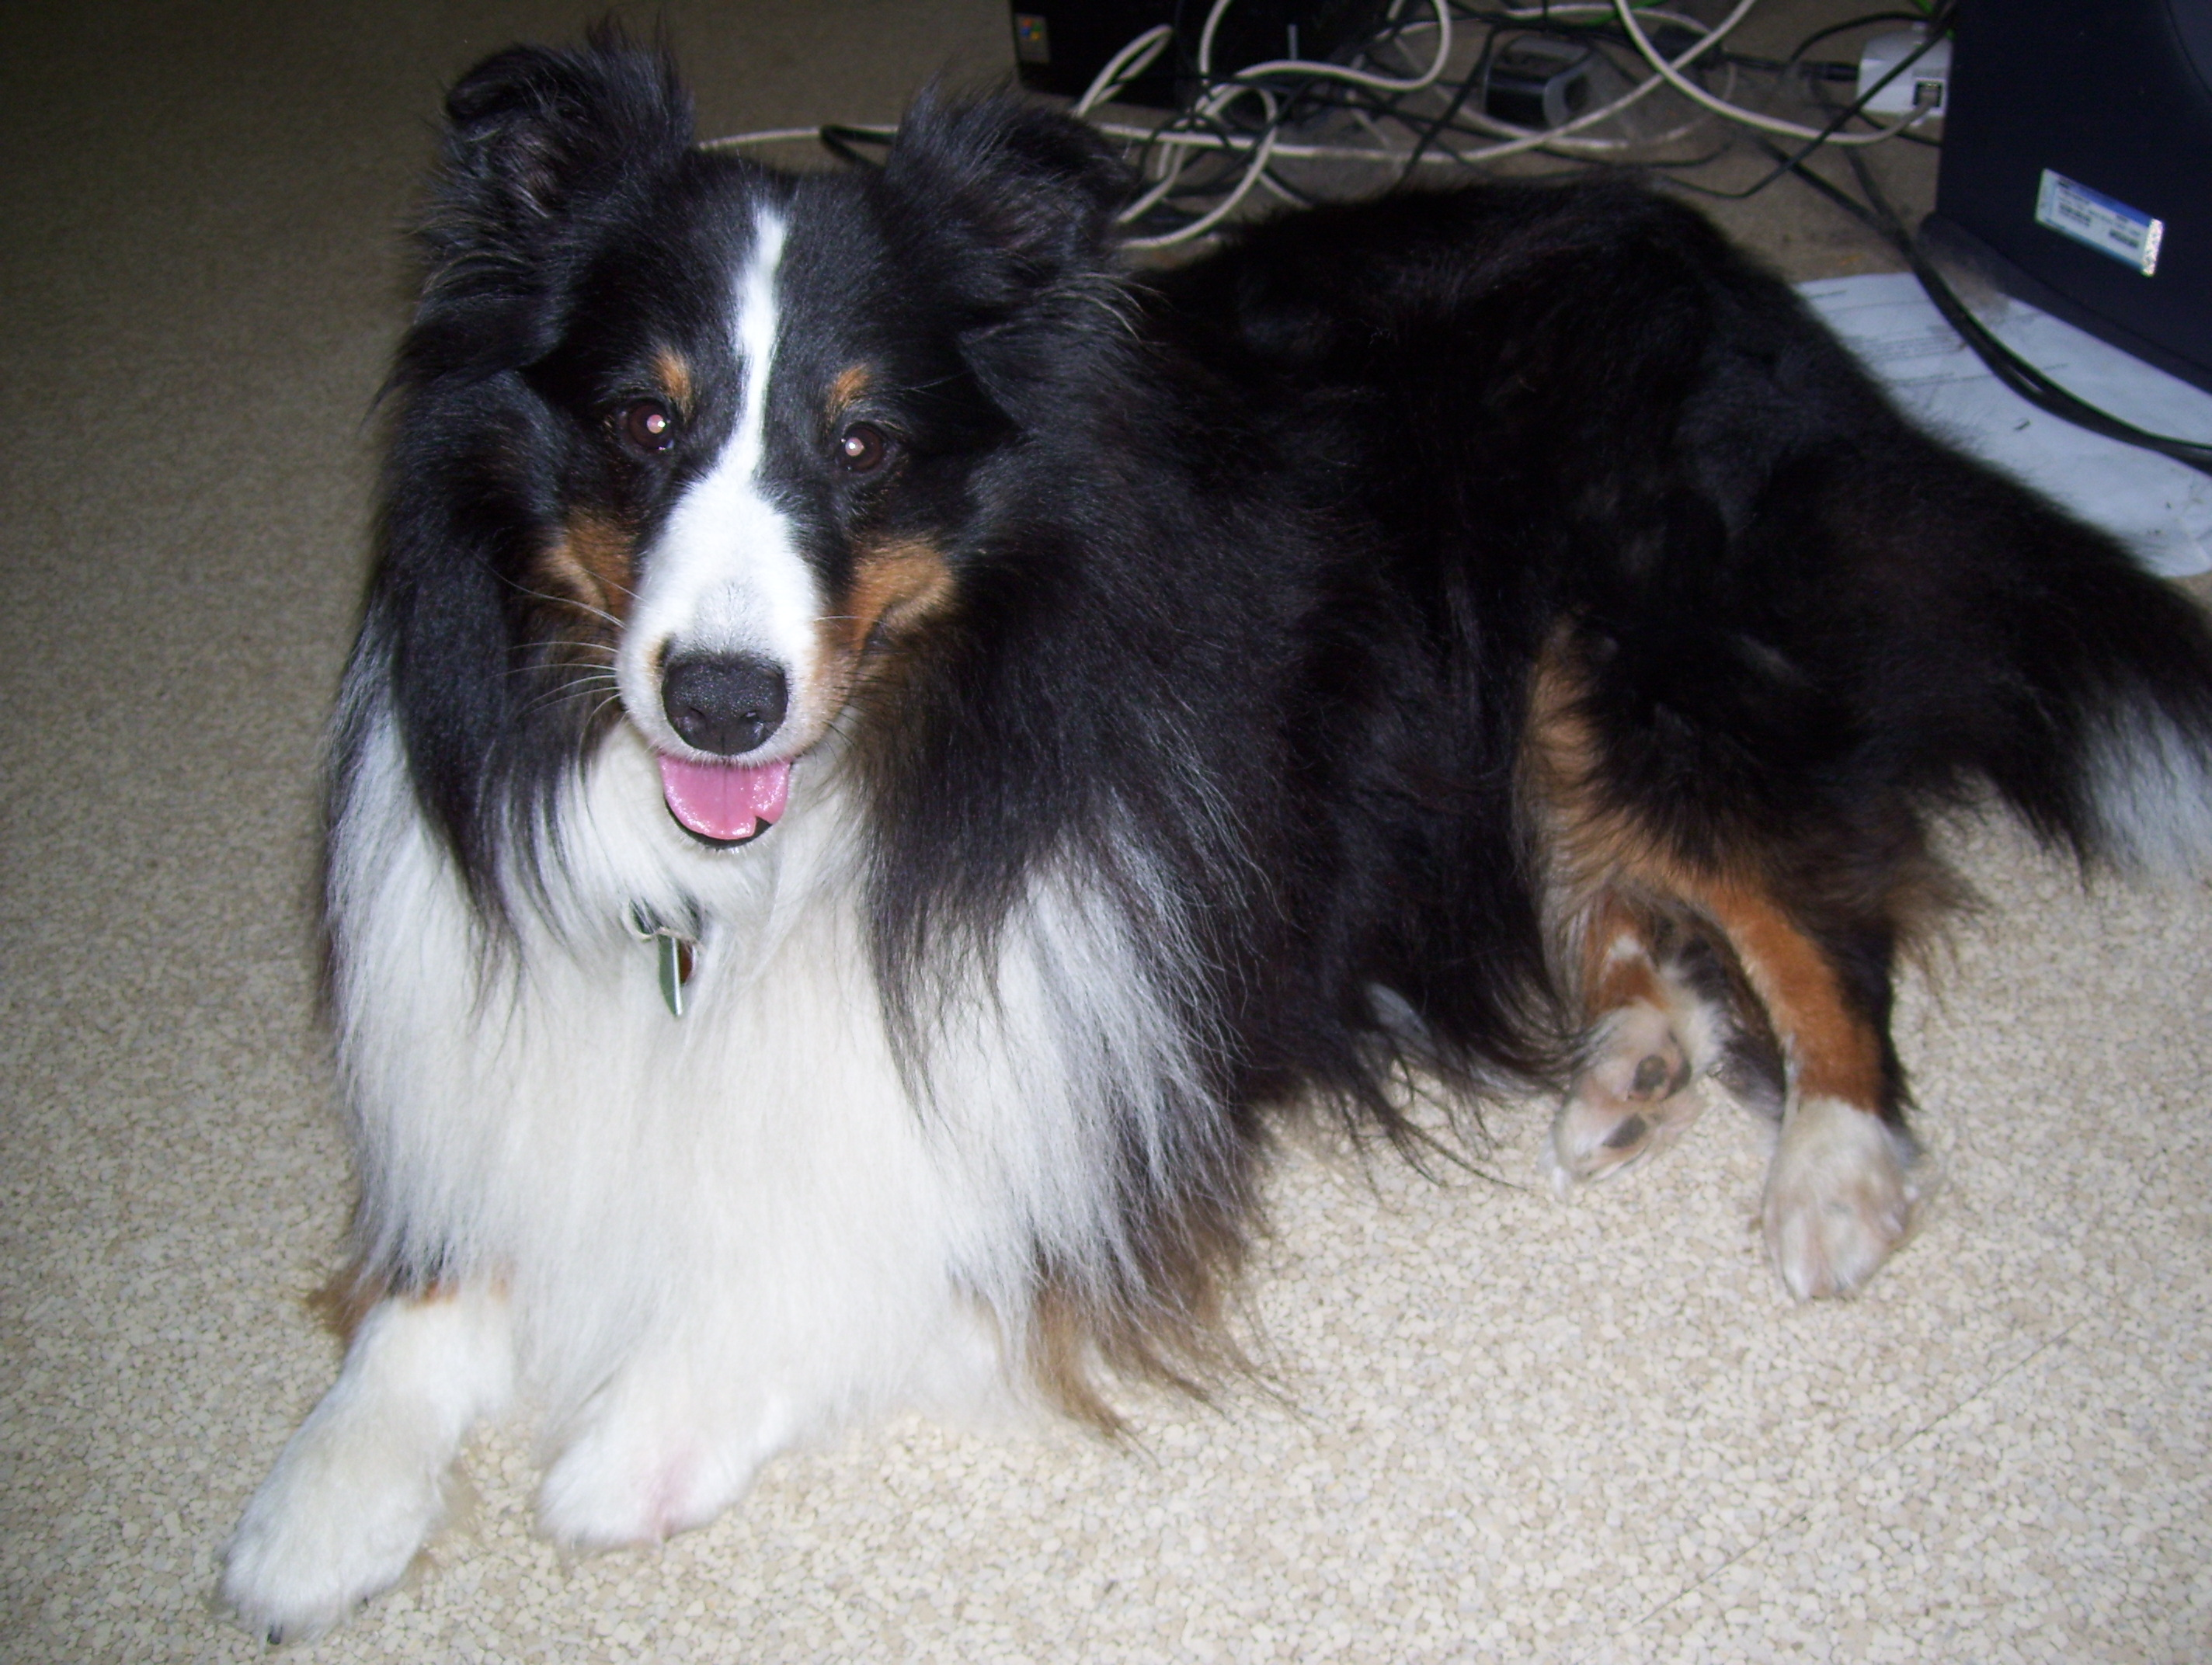 Wyndeway shetland sheepdogs we are a small breeder of shetland sheepdogs and we breed in accordance to the american shetland sheepdog association standard which can be found at nvjuhfo Images